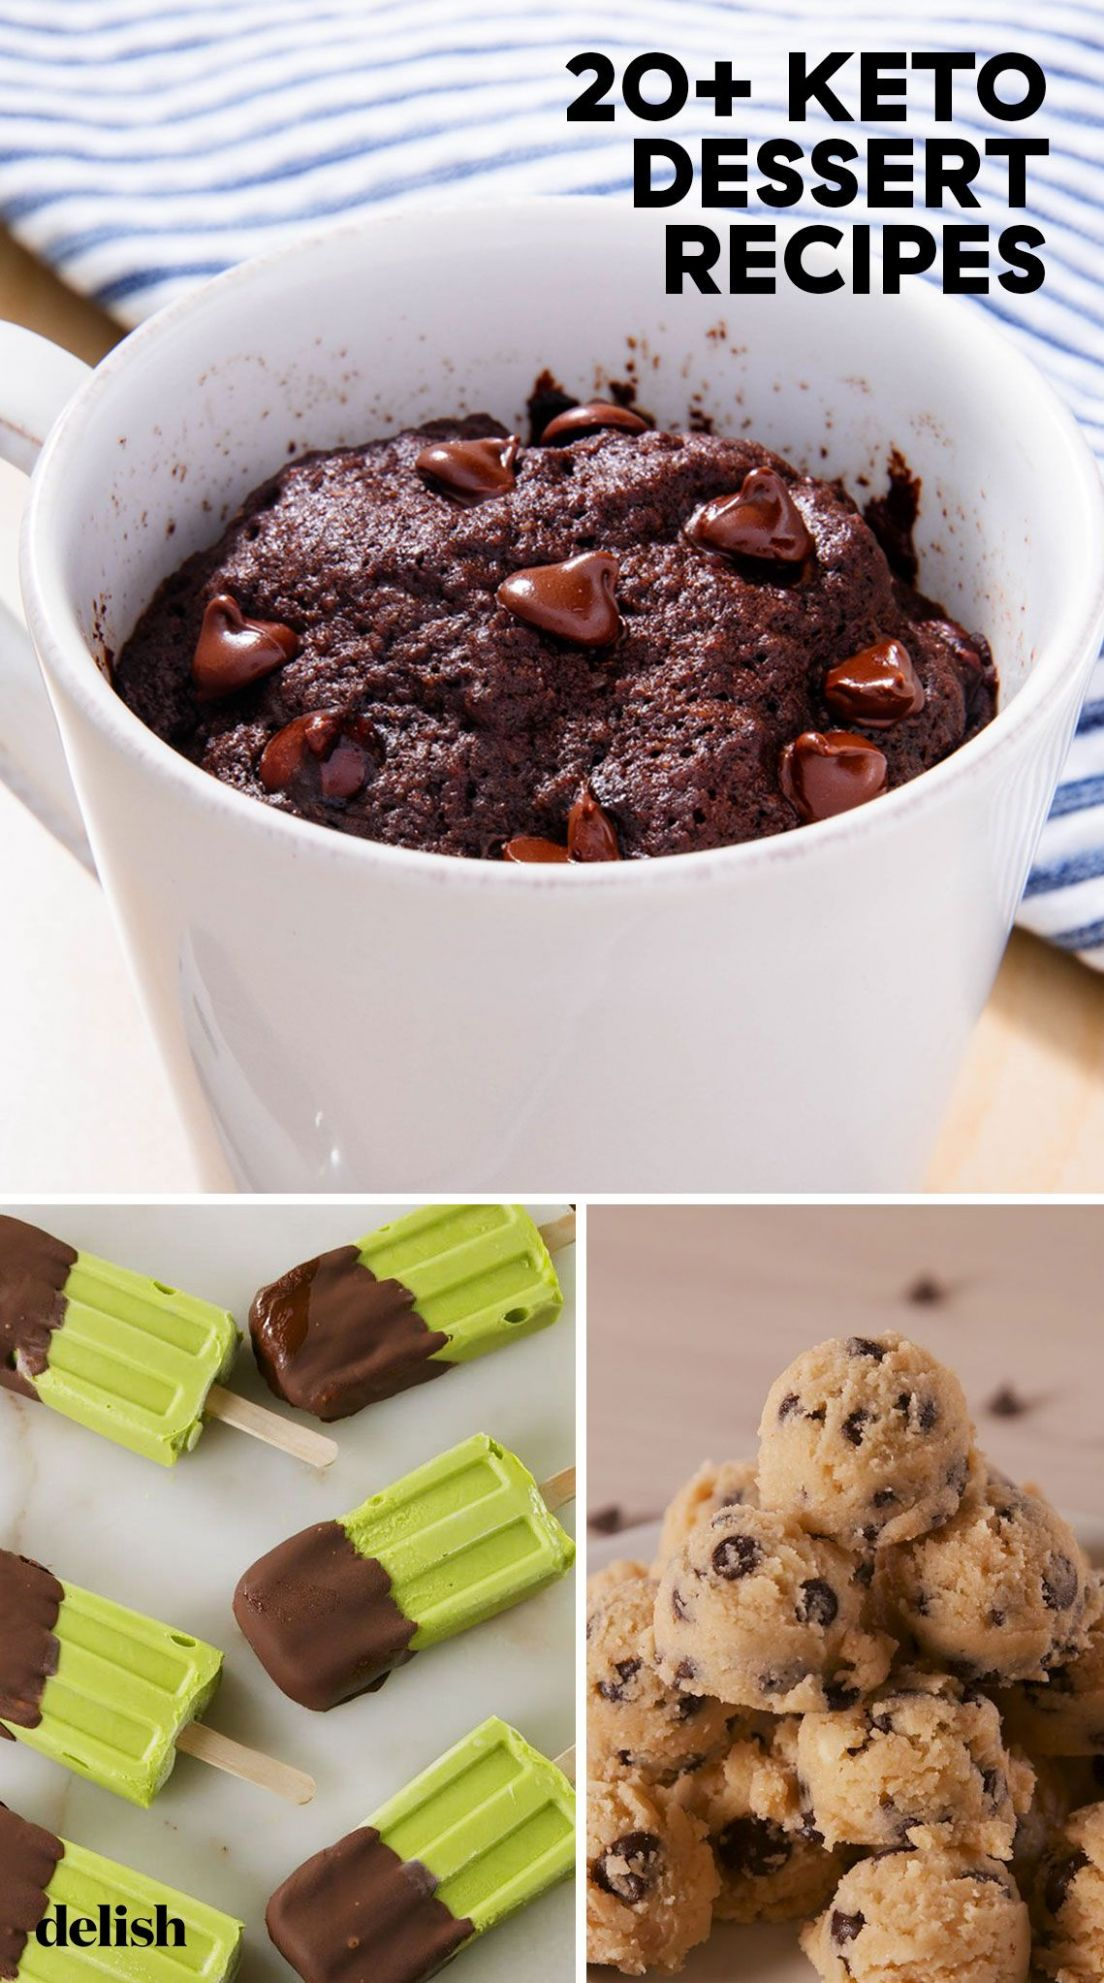 8+ Easy Keto Dessert Recipes - Best Low Carb Desserts for Keto Diets - Dessert Recipes Delish